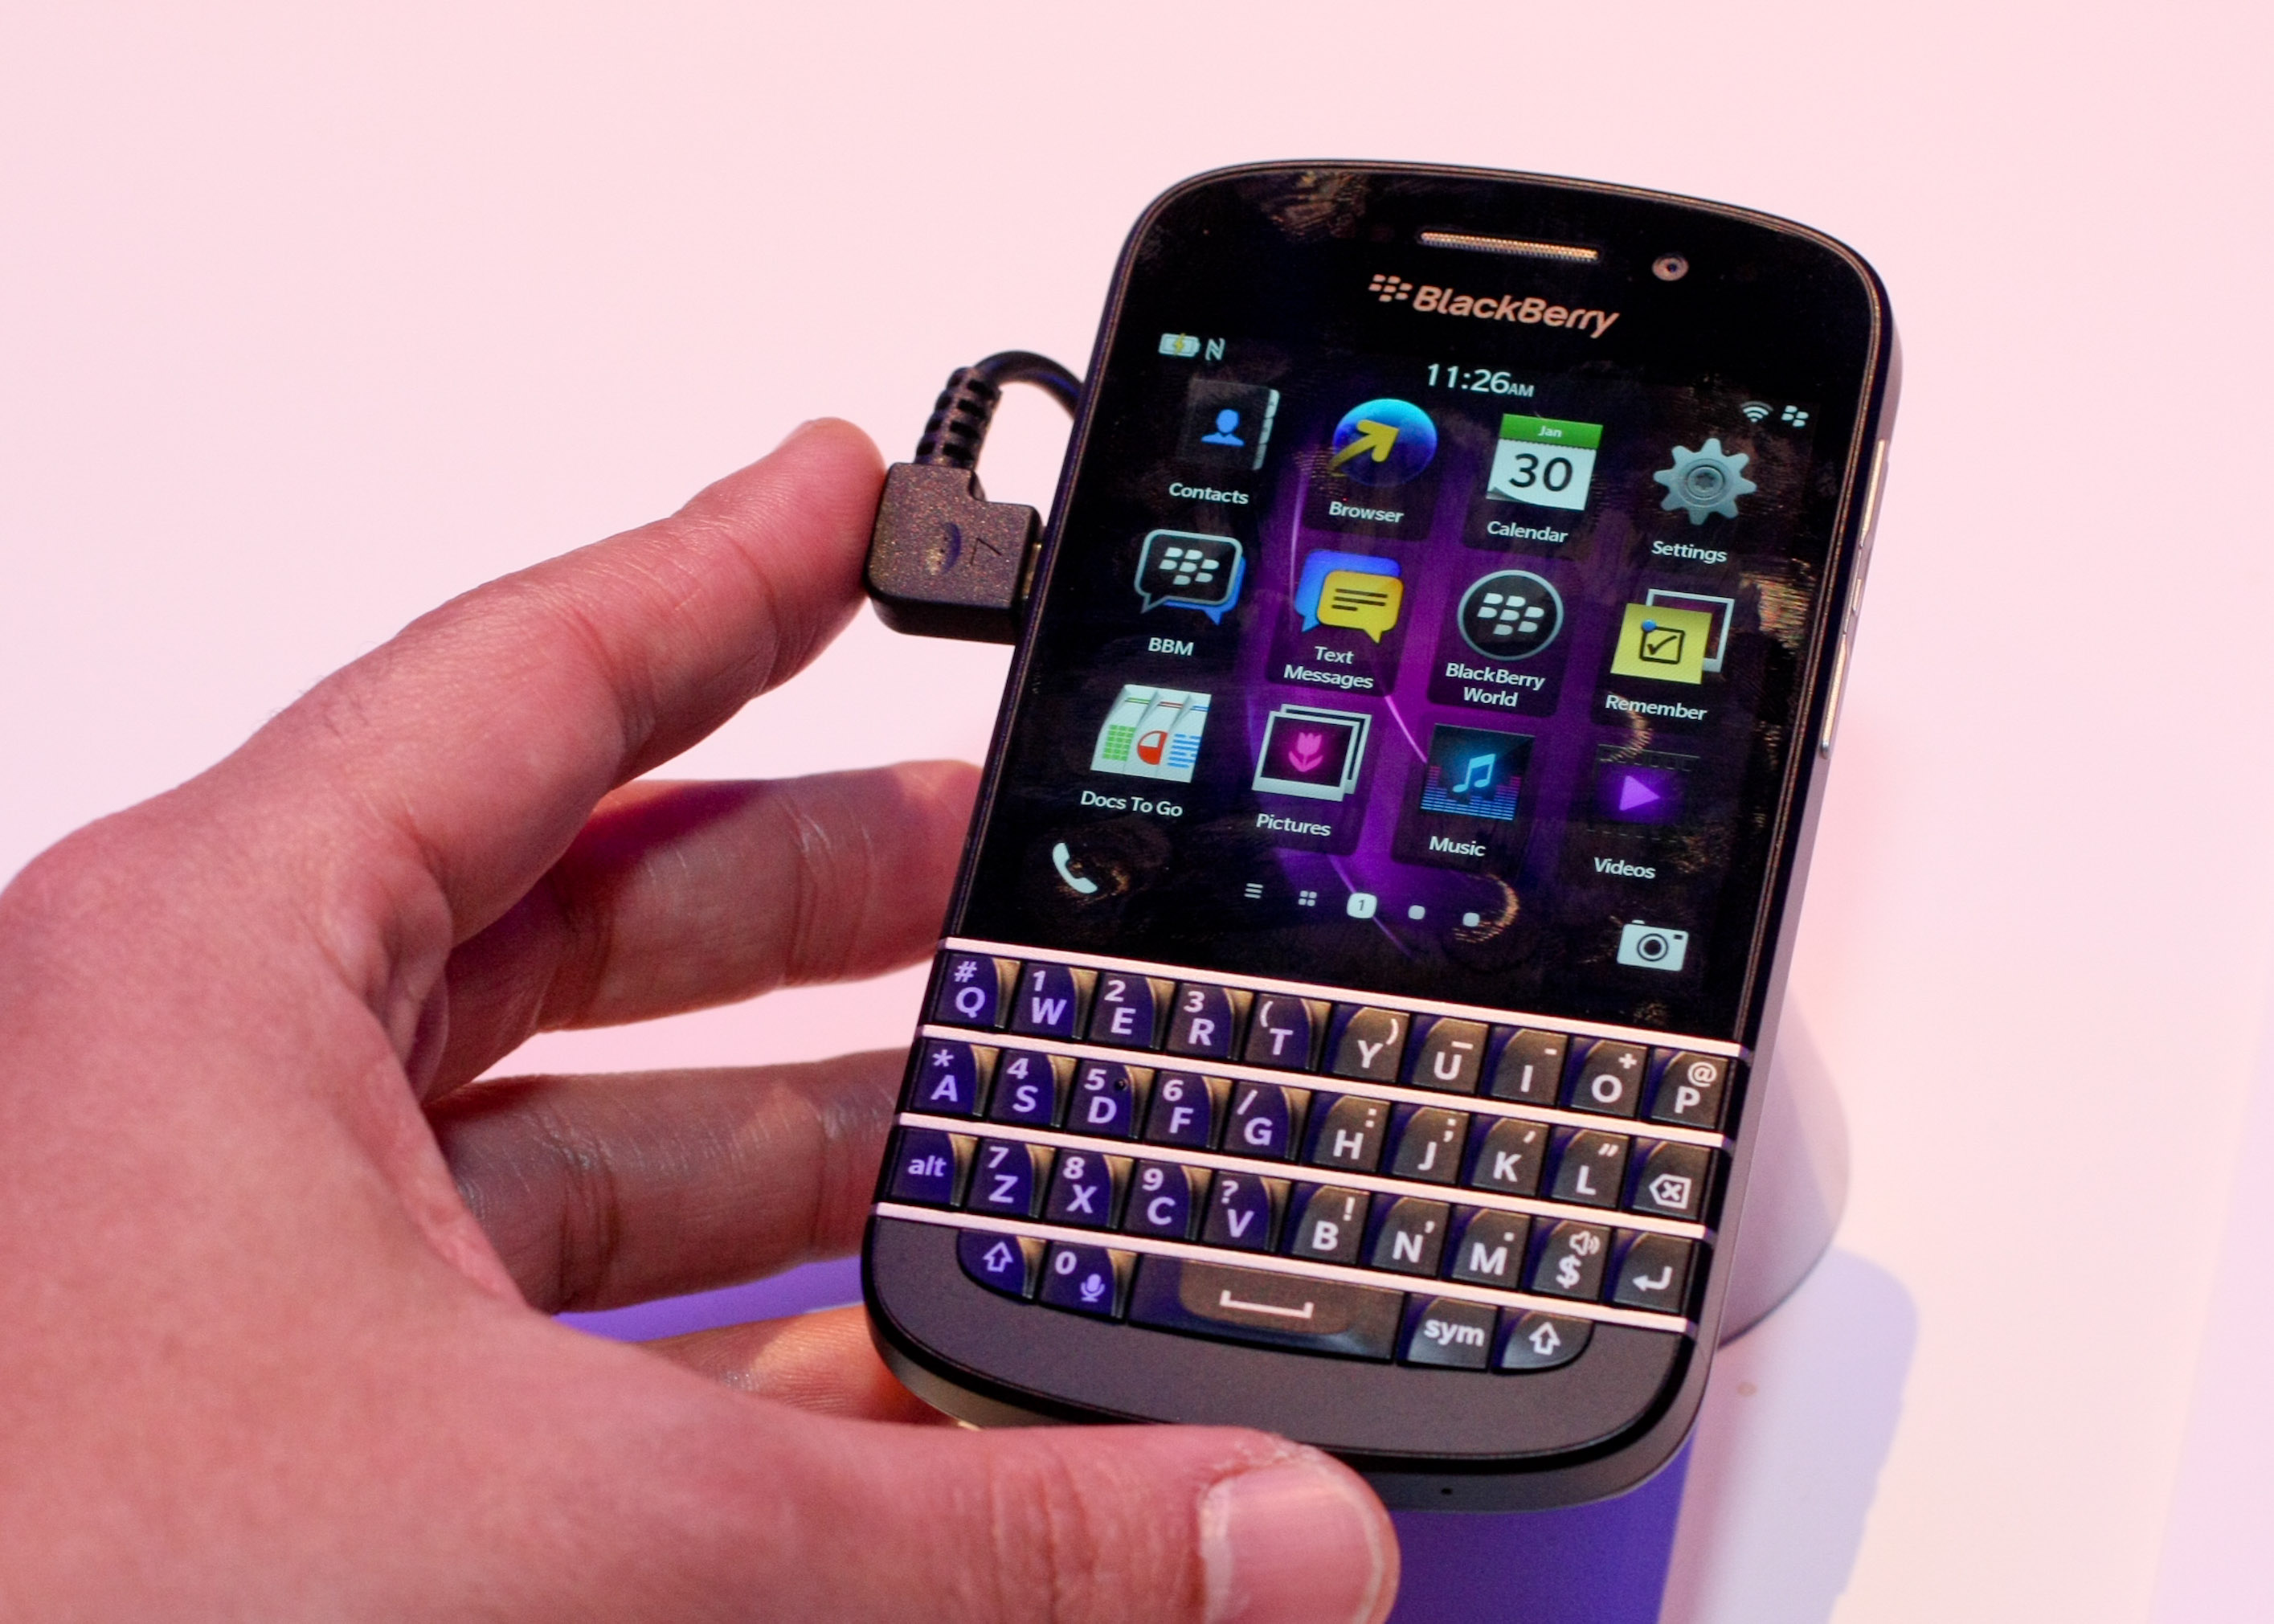 Welcome to the new Q10